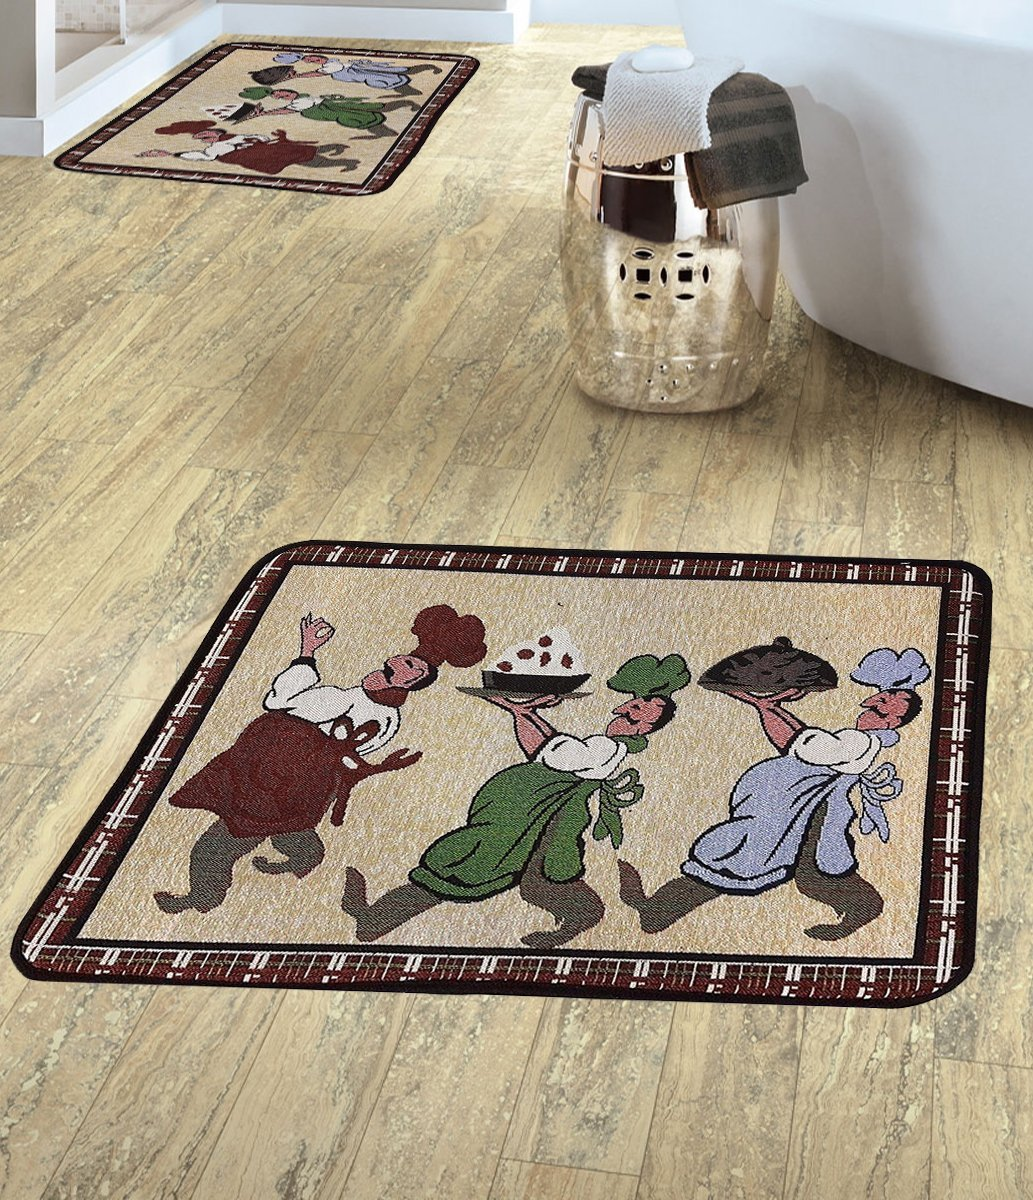 awesome mat kitchen tfast cooking large for rug mats and trend chef pic ideas comfort floor